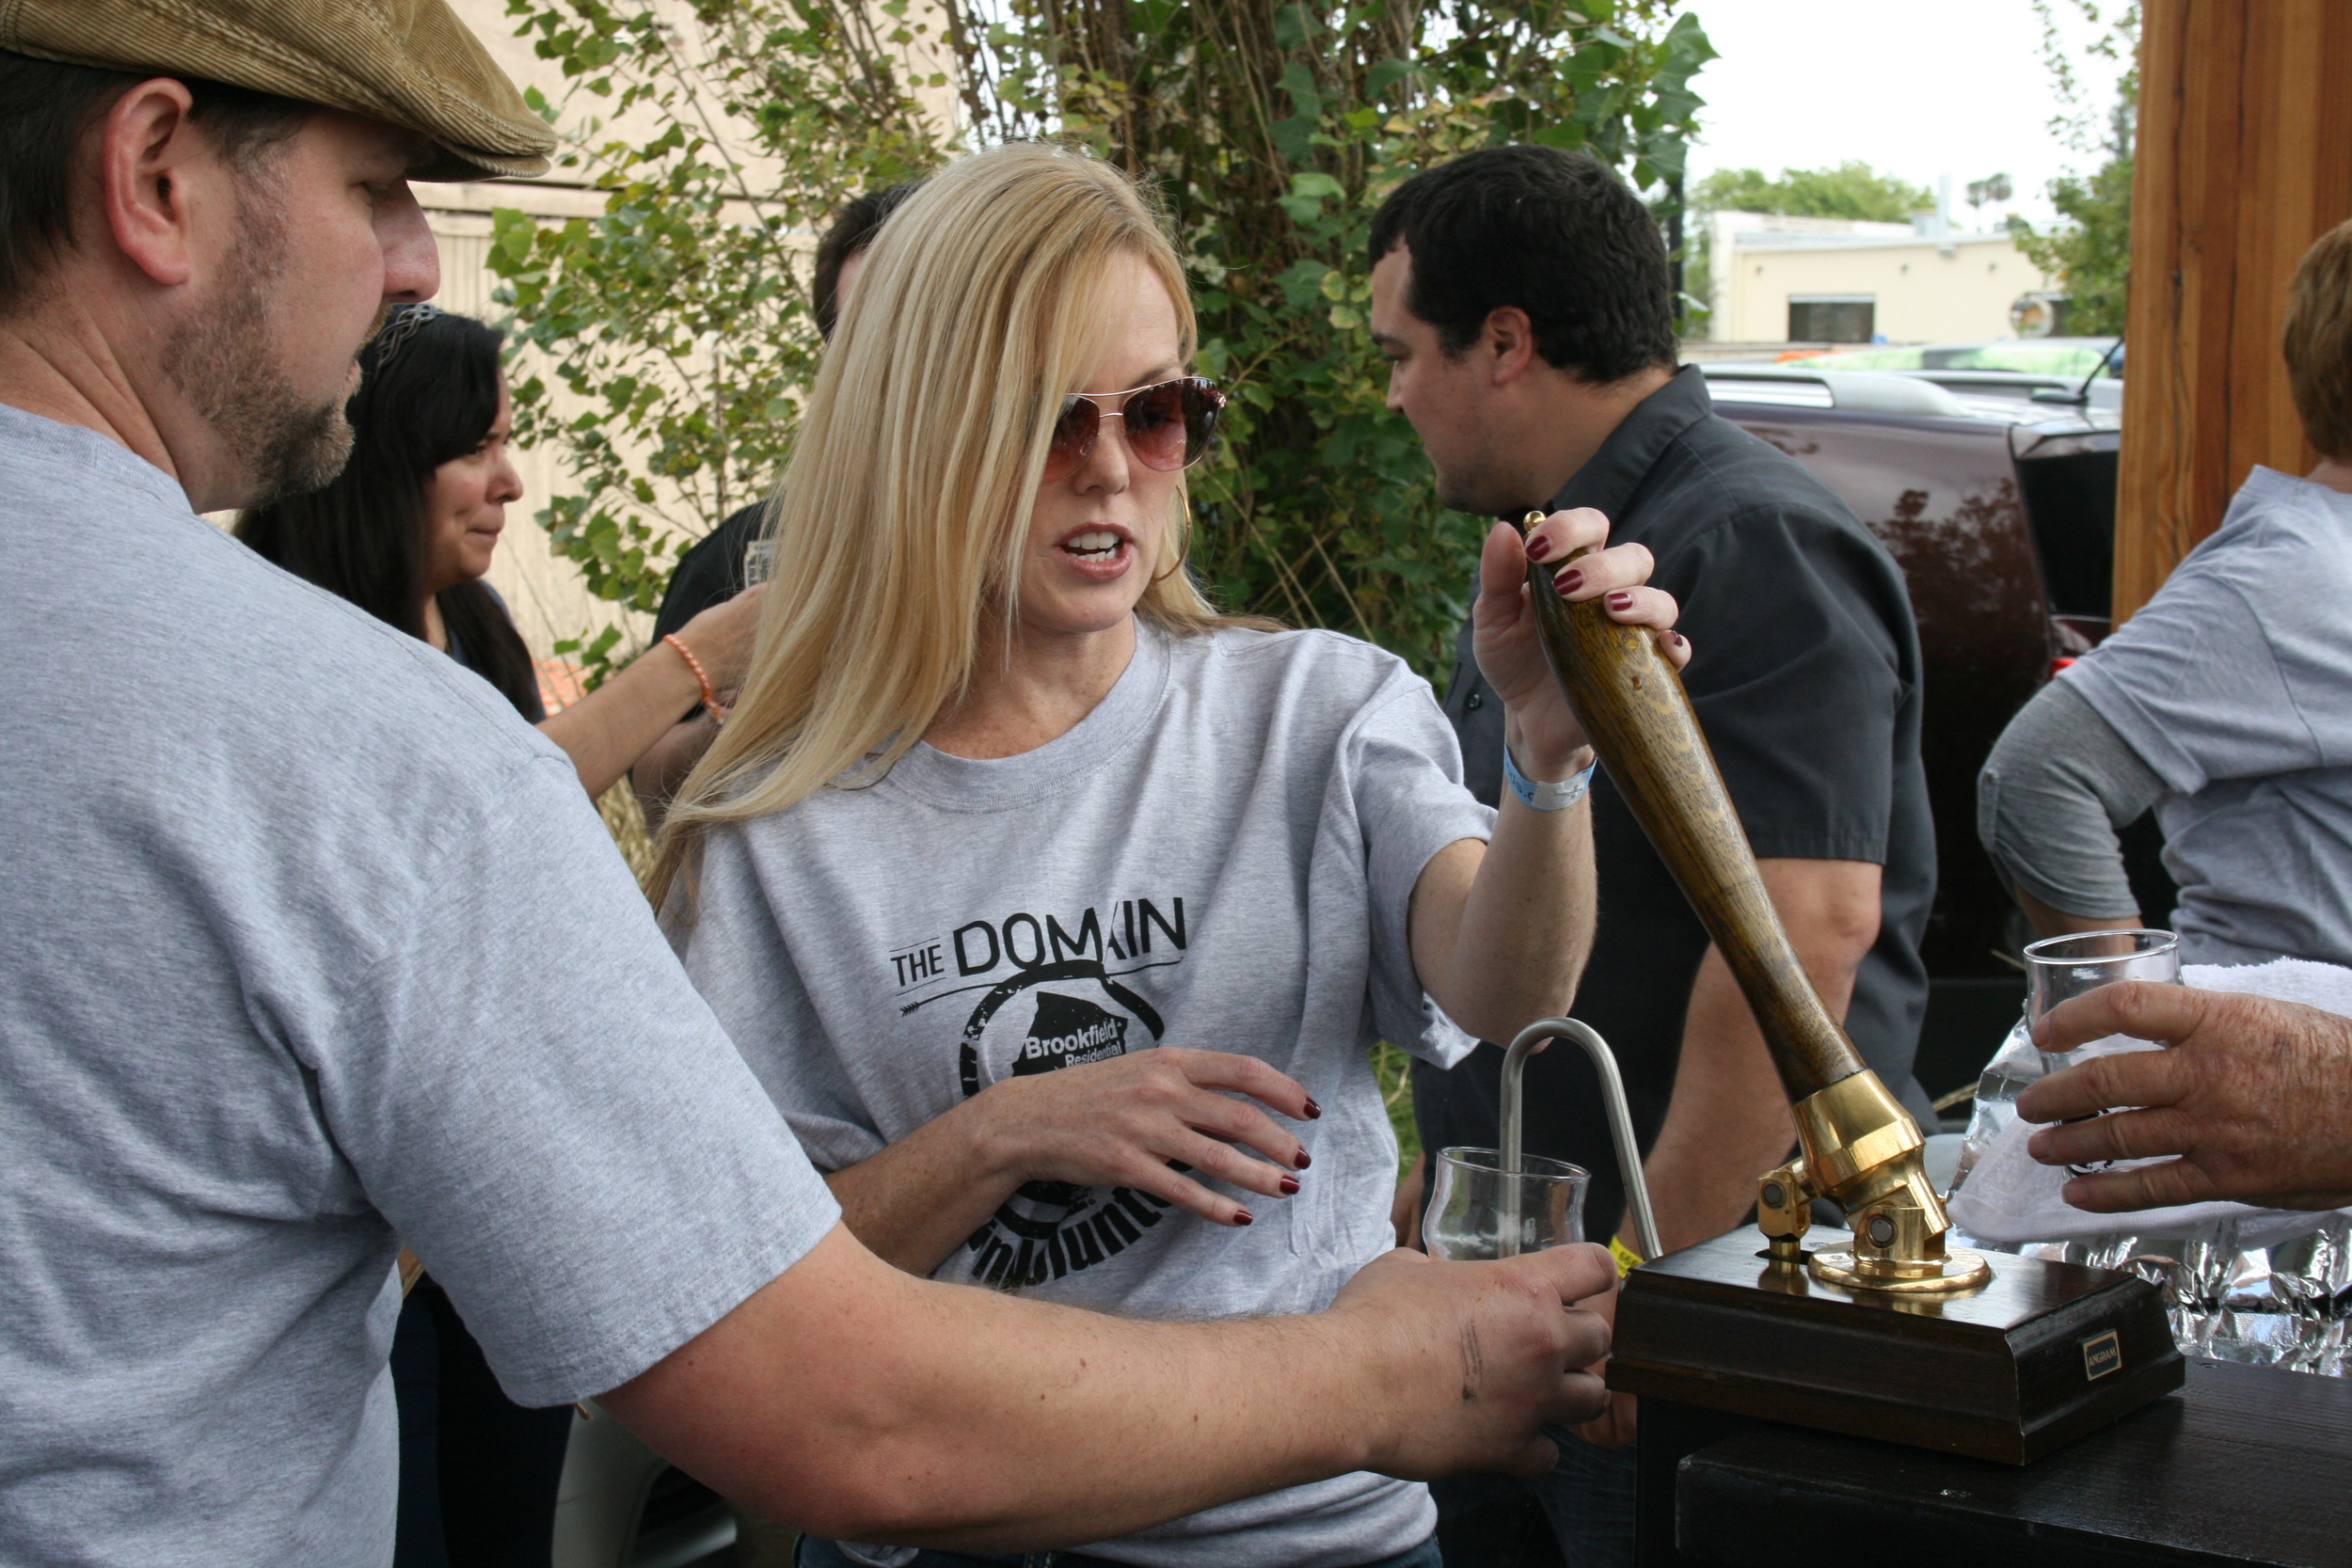 Festival organizer Greg Nagel gets first pull. The perks of running your own beer festival.